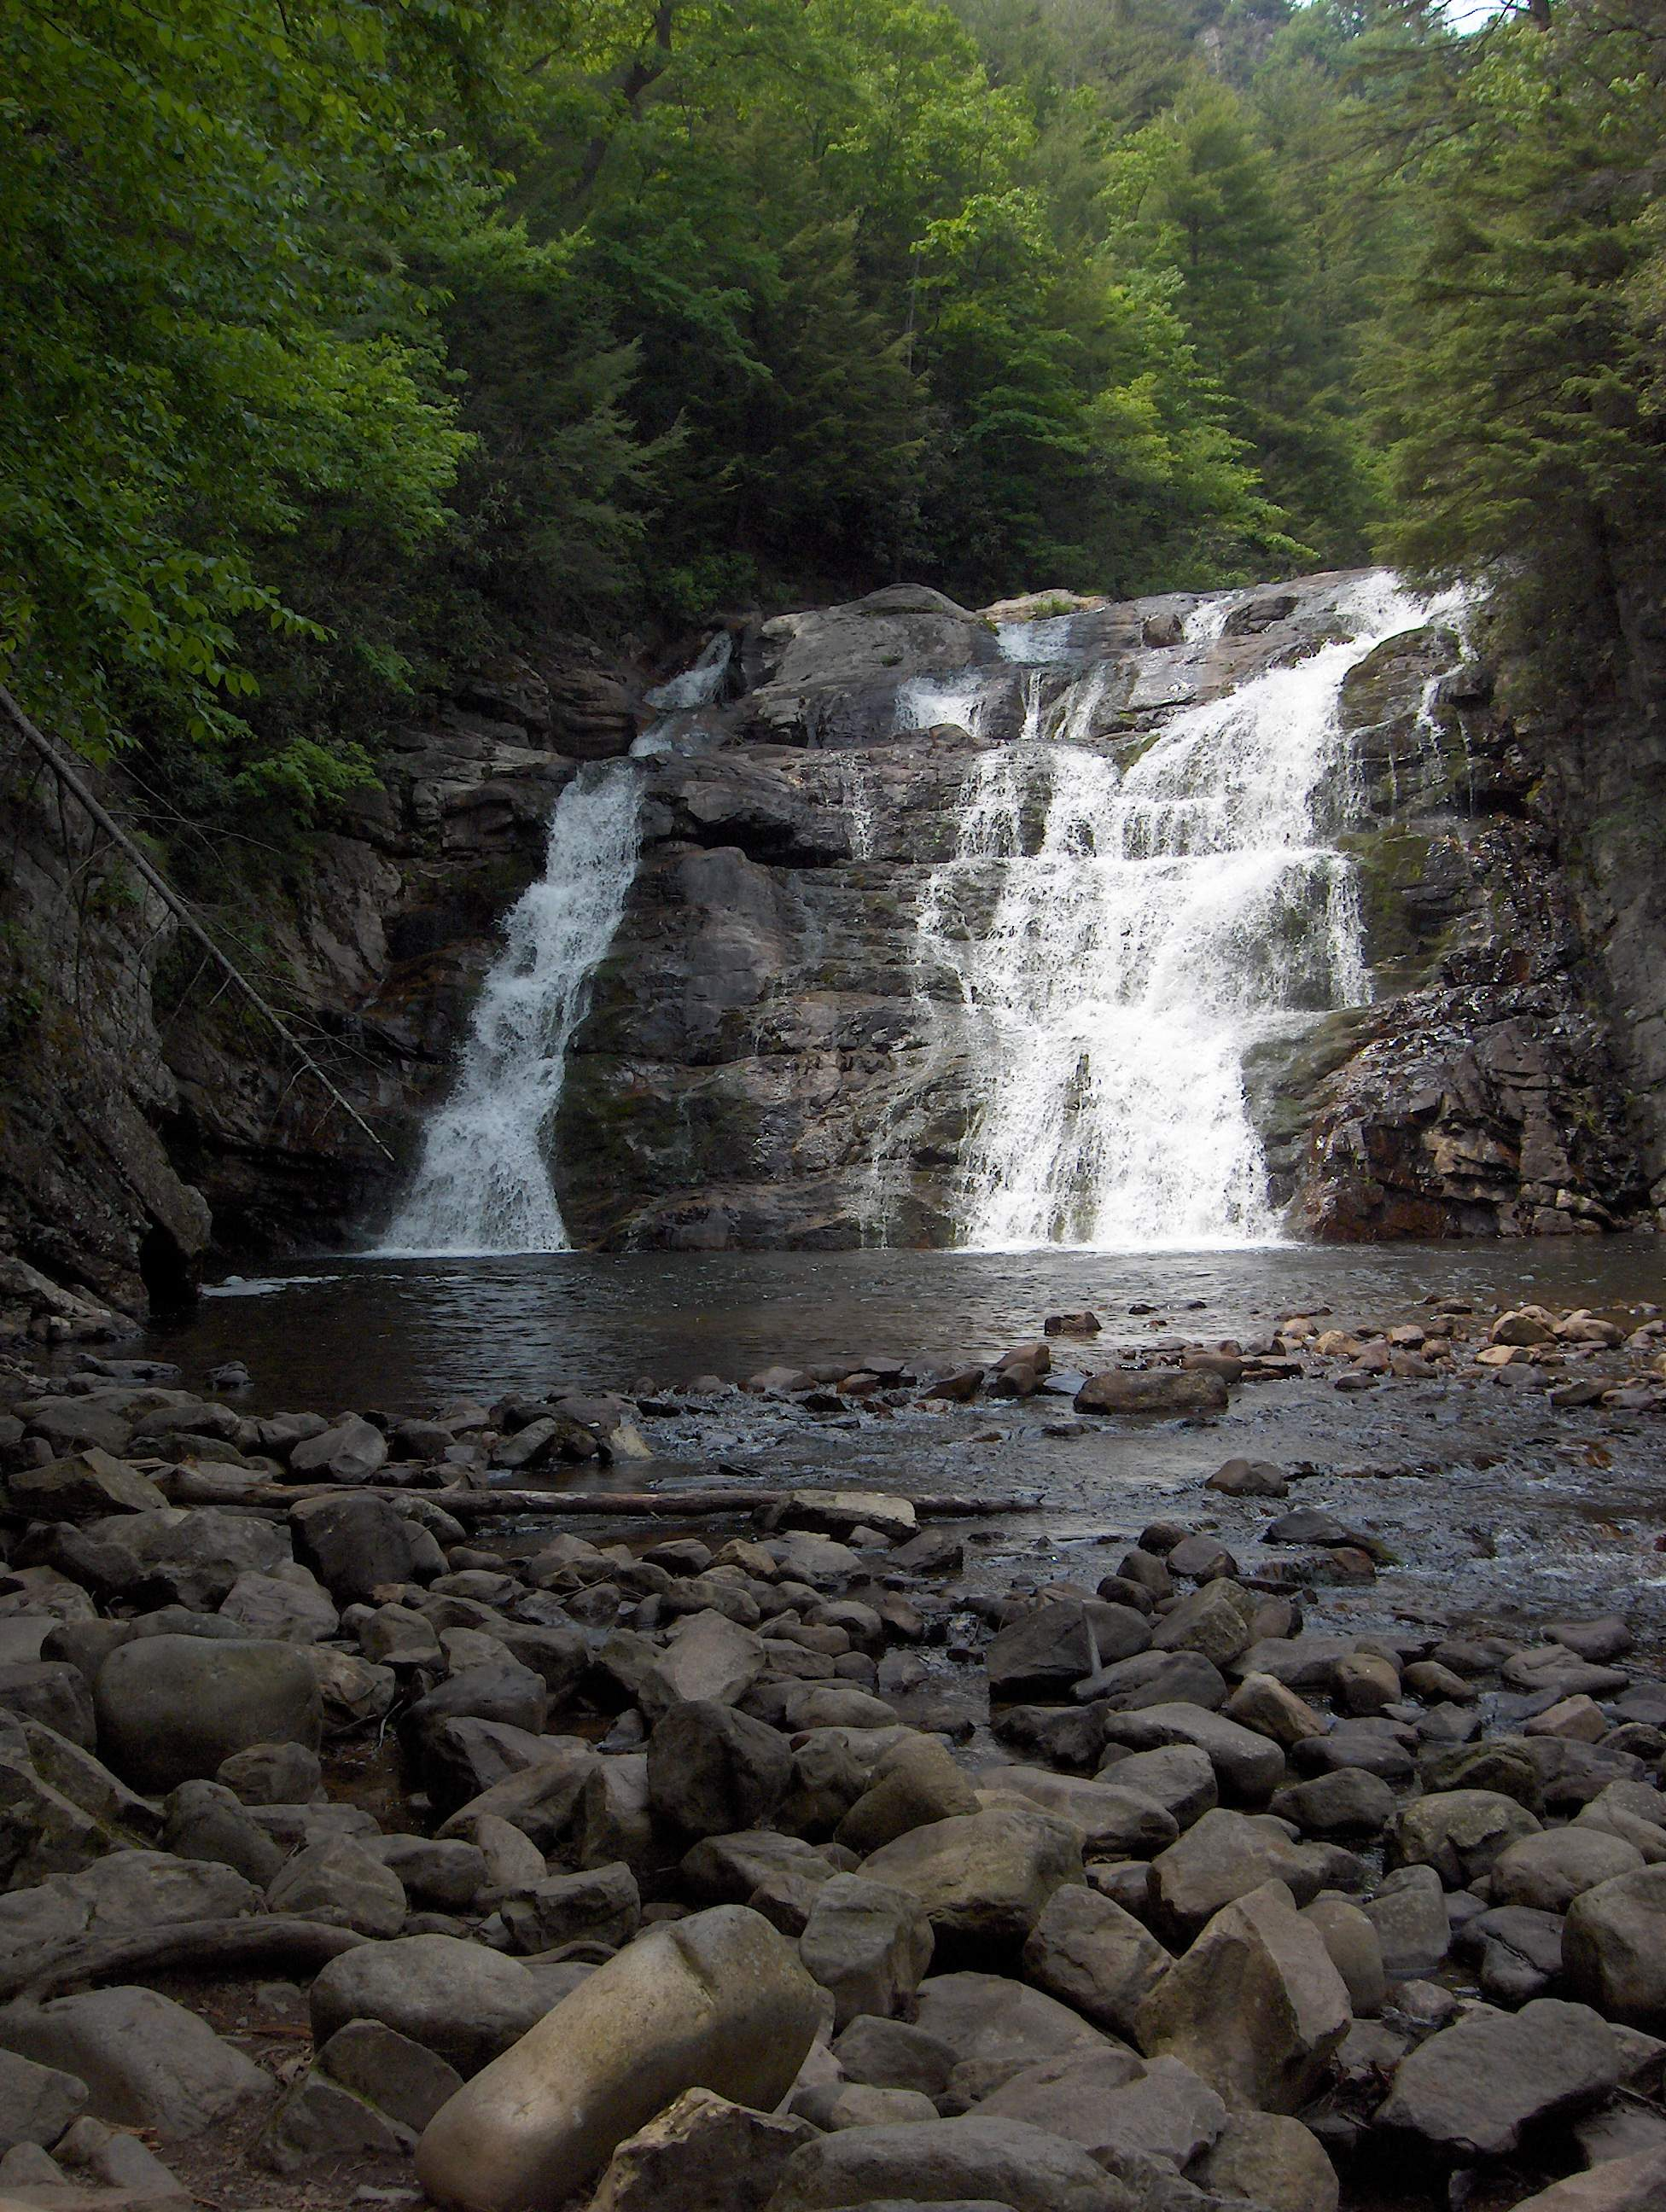 laurel fork chat sites Laurel fork heritage reserve, seneca: see reviews, articles, and photos of laurel fork heritage reserve, ranked no12 on tripadvisor among 16 attractions in seneca.